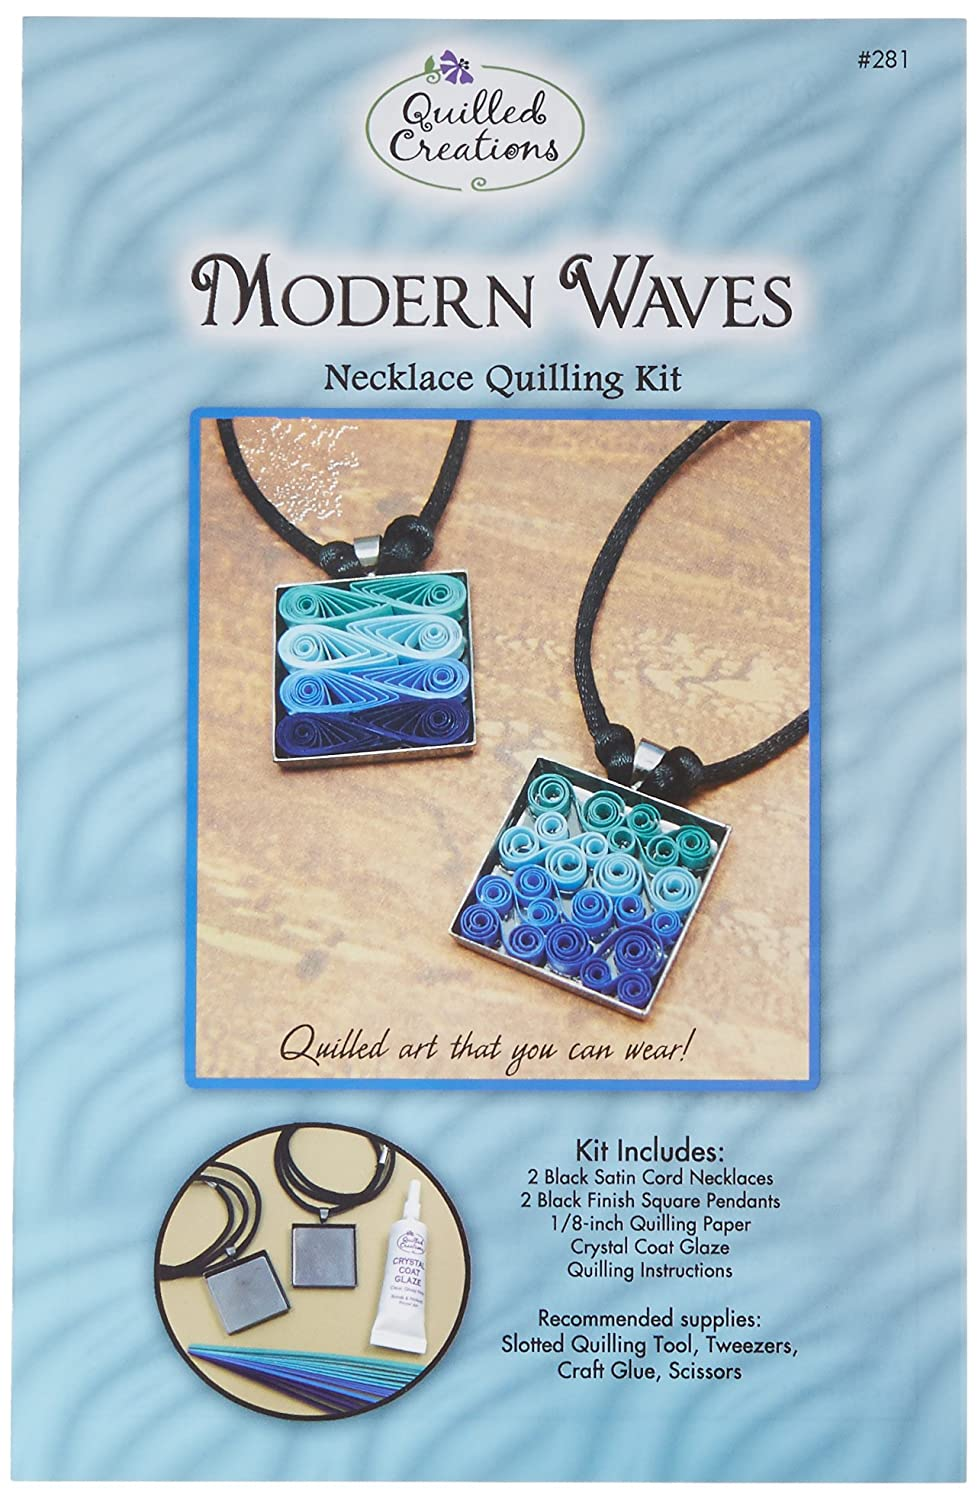 Quilled Creations Q281 Modern Waves Necklace Quilling Kit